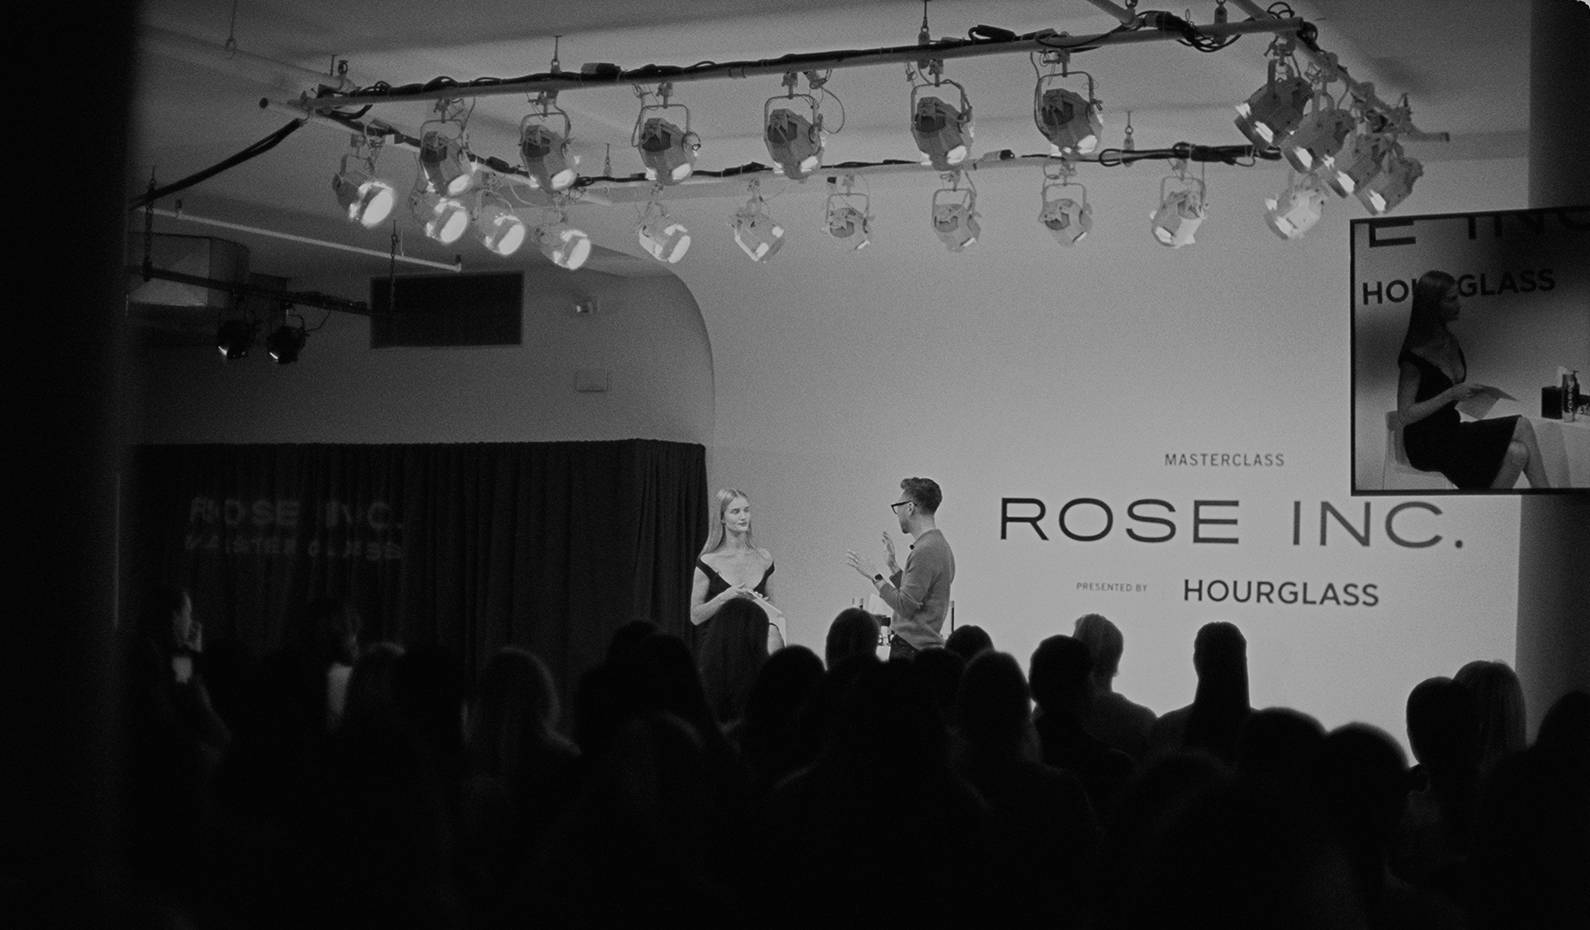 Go behind the scenes of Rosie's MASTERCLASS